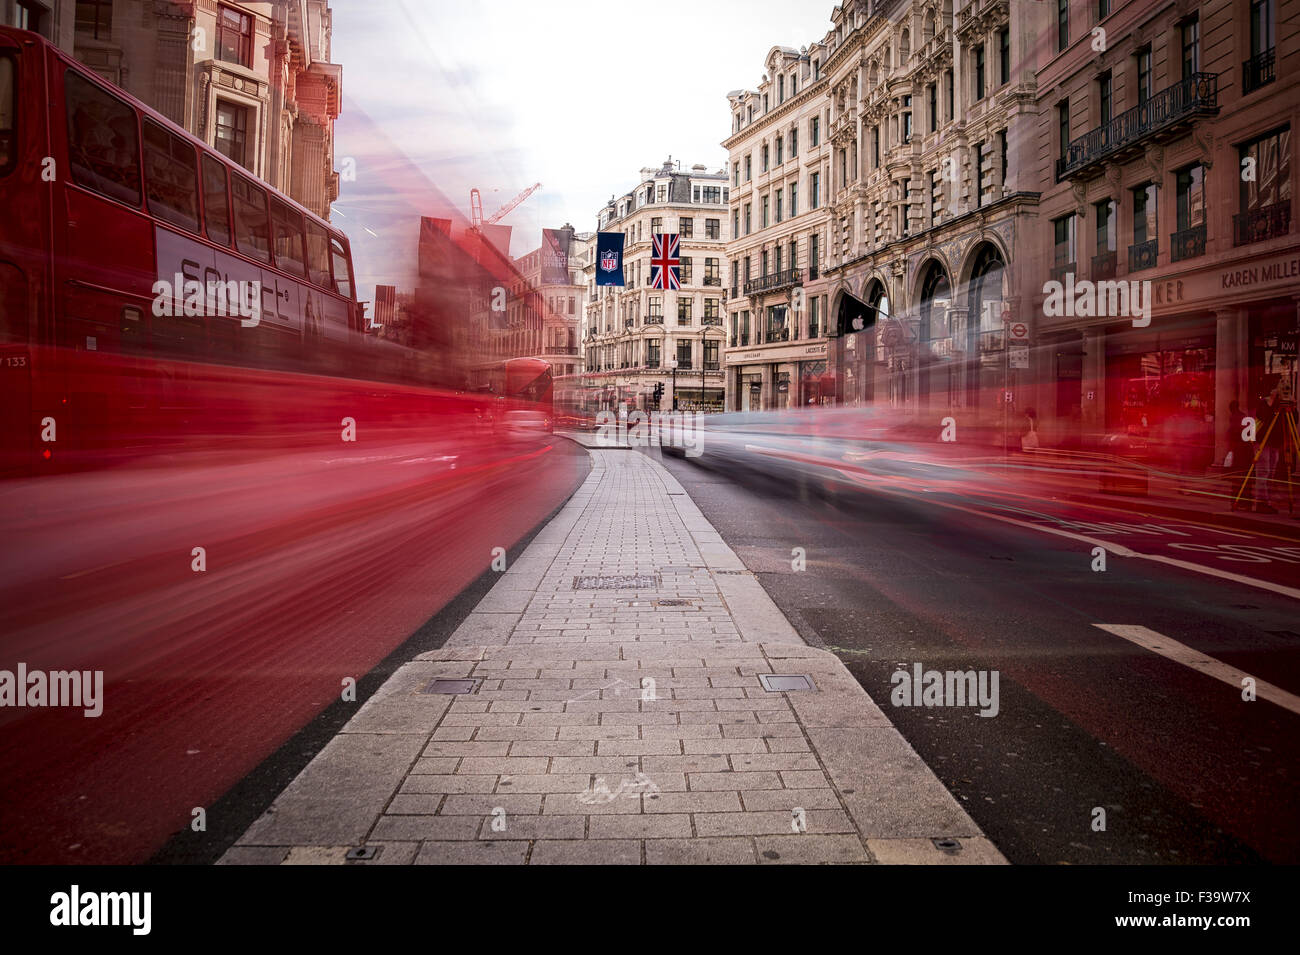 Regent Street in London with blur of traffic. HDR. - Stock Image